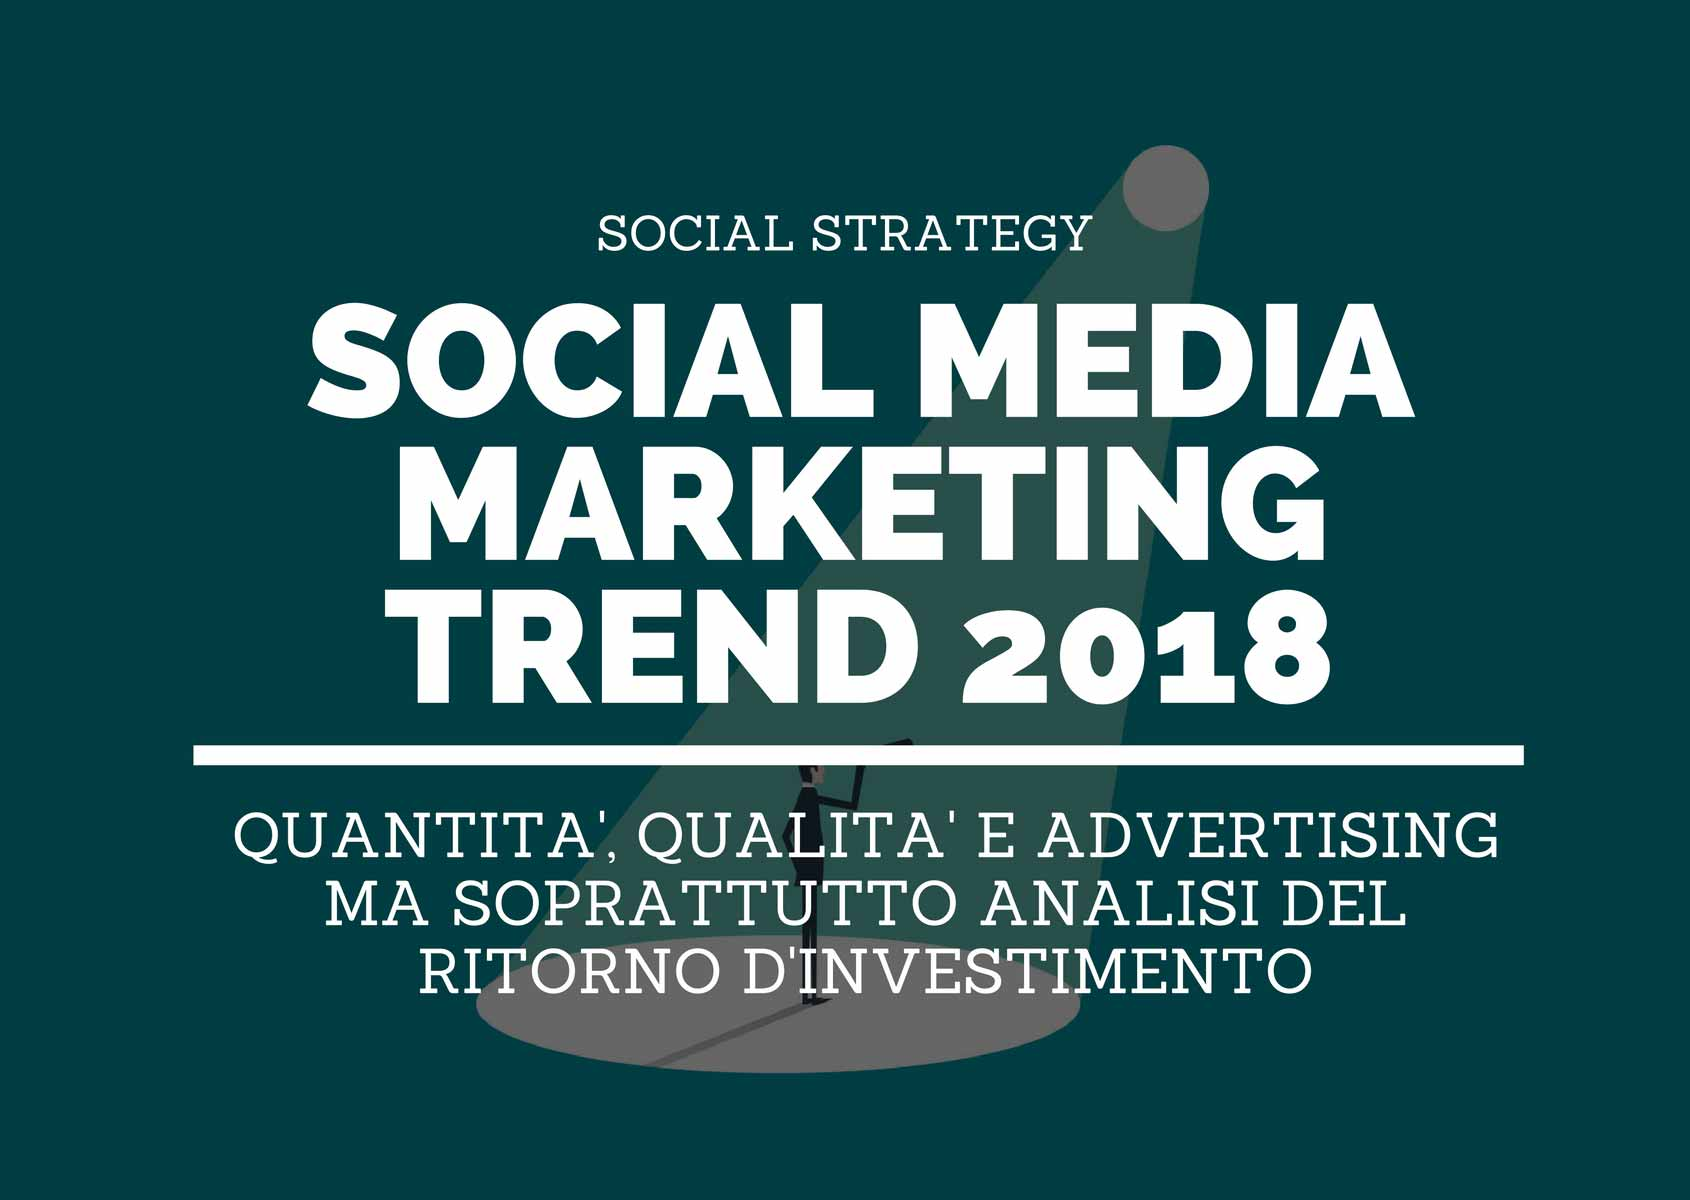 Social Media Marketing Trend 2018